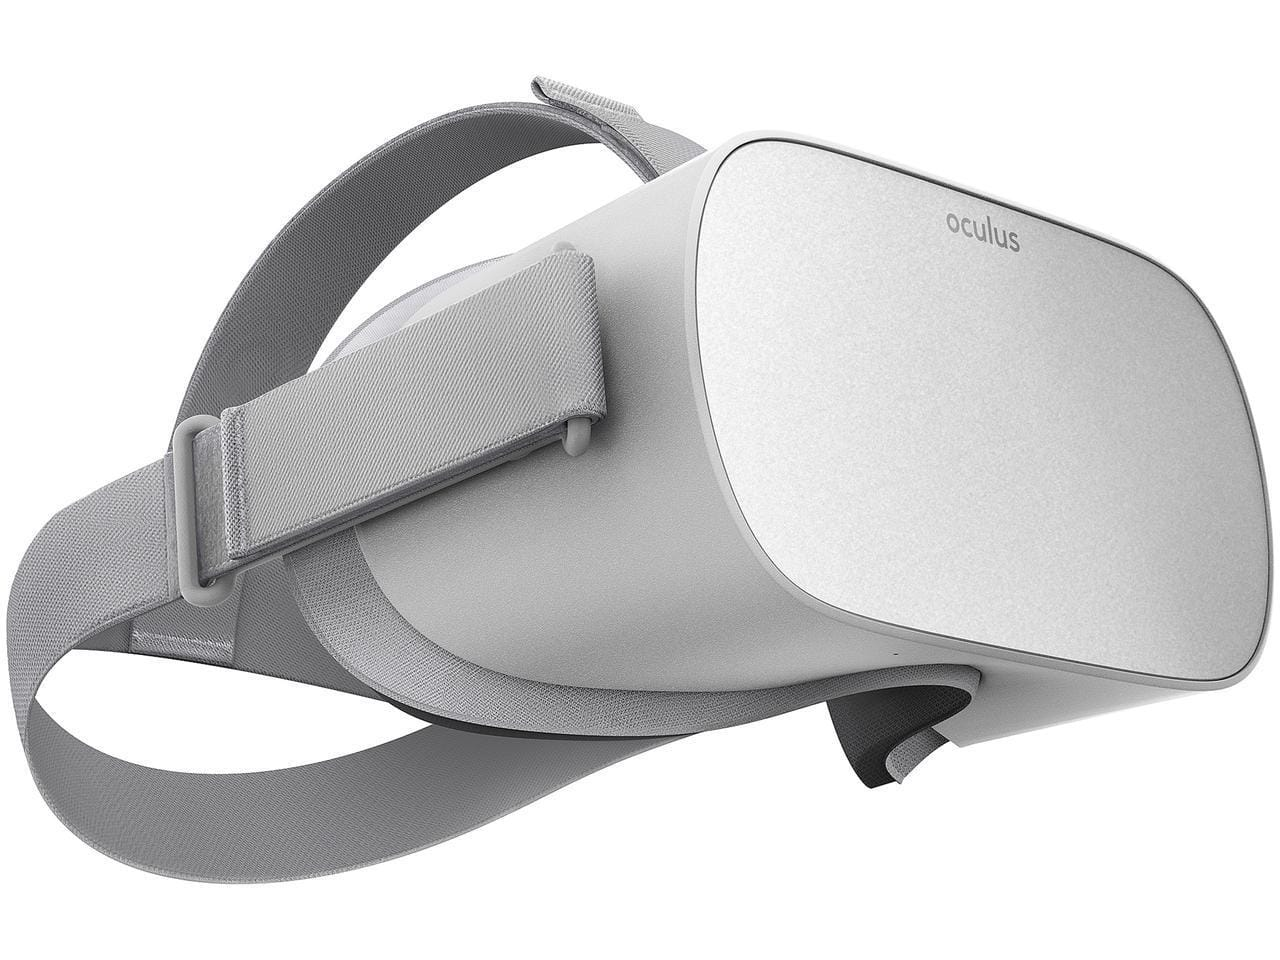 Oculus Go Standalone 32GB $149, All-In-One VR Headset On